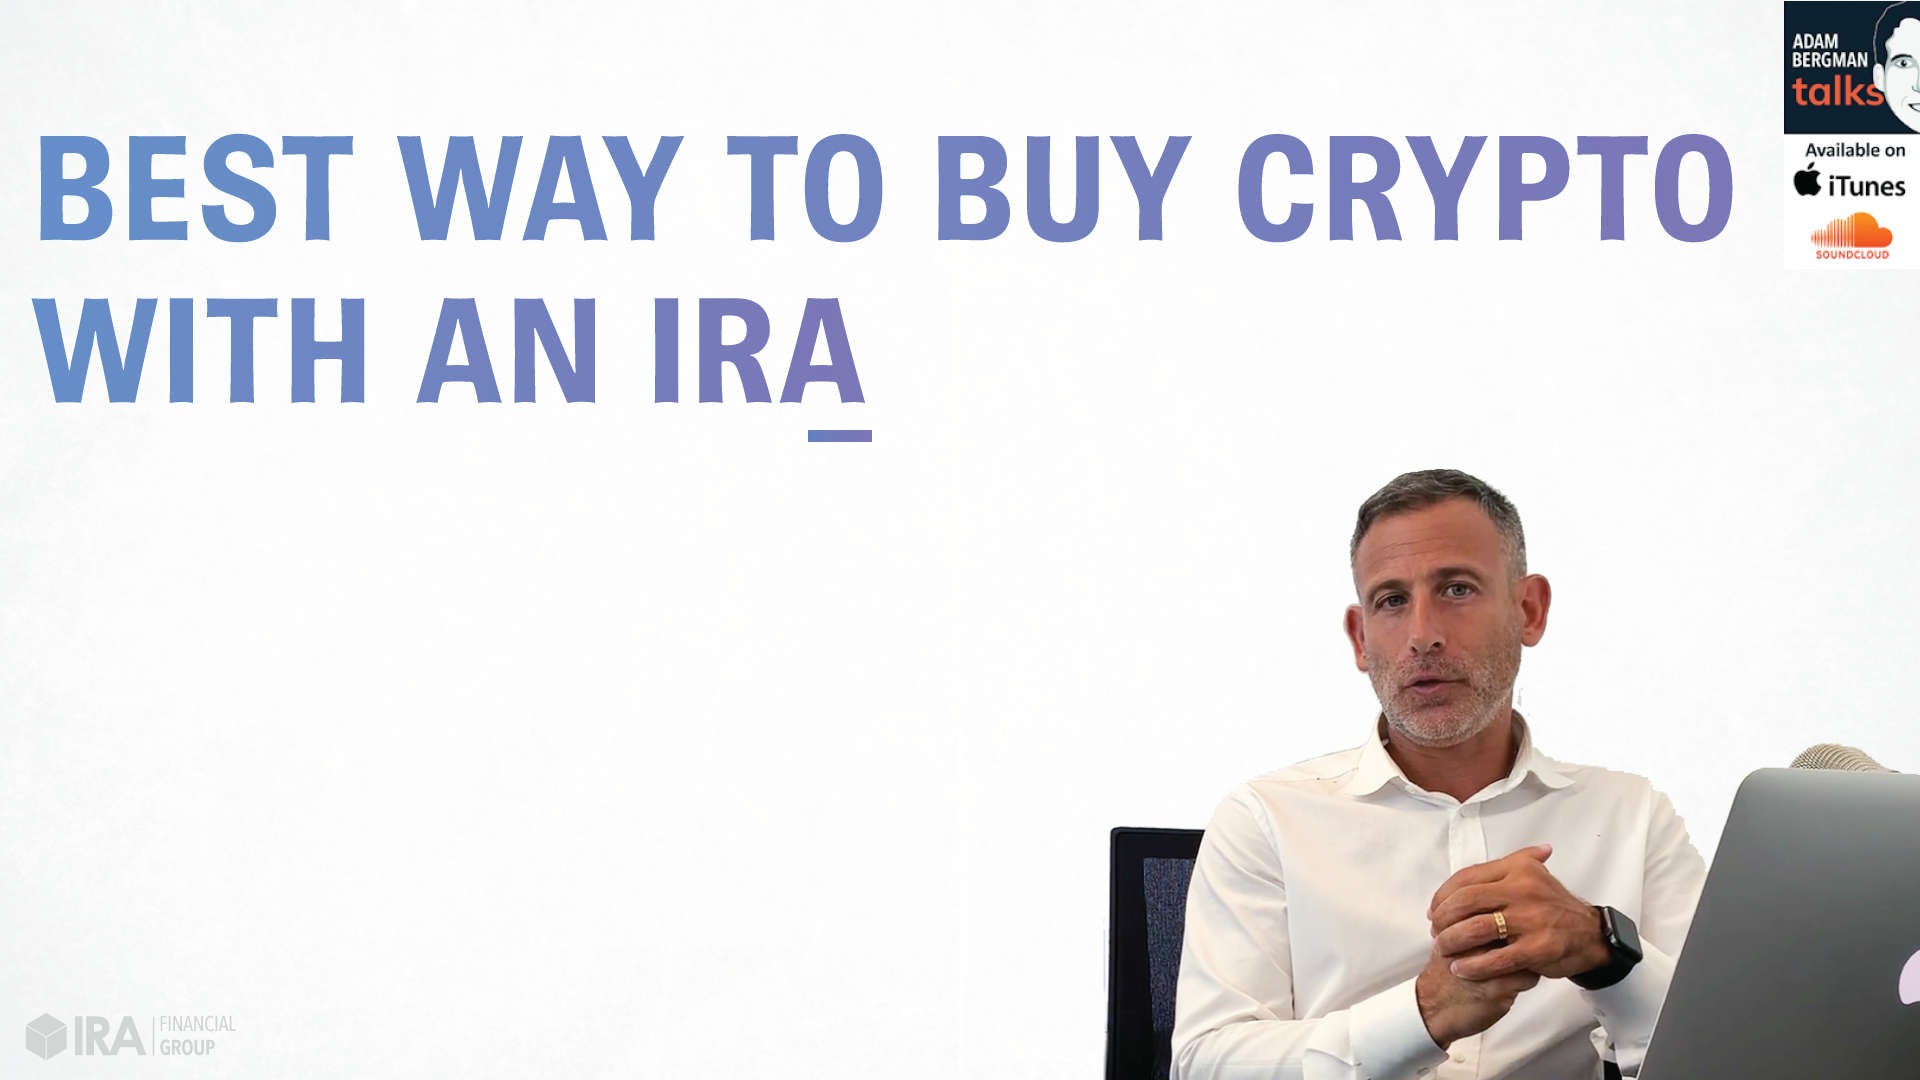 Invest in Cryptocurrencies with a Self-Directed IRA